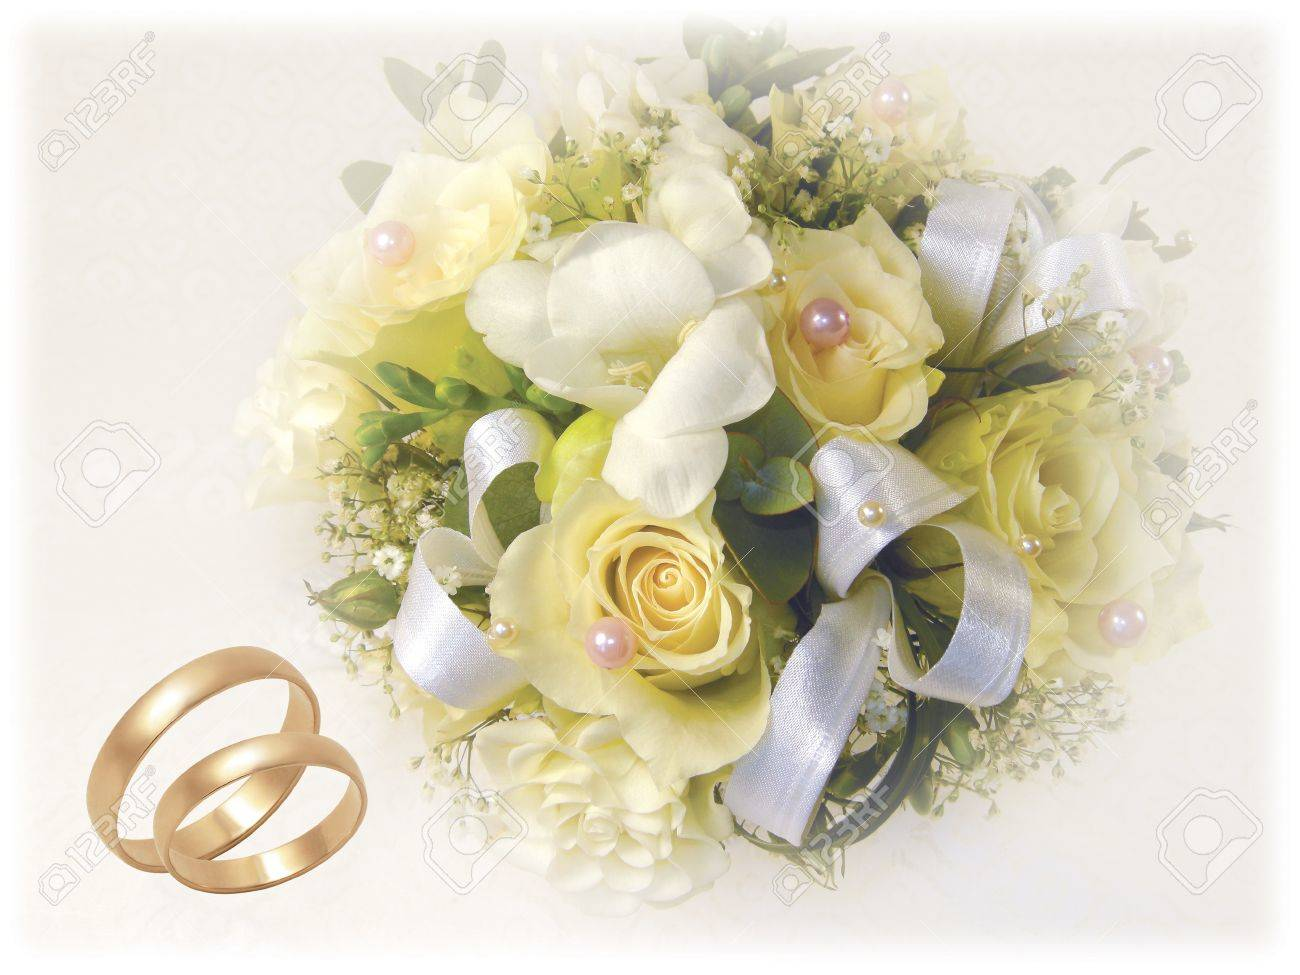 Wedding Bouquet With Gold Wedding Rings On White Background Stock